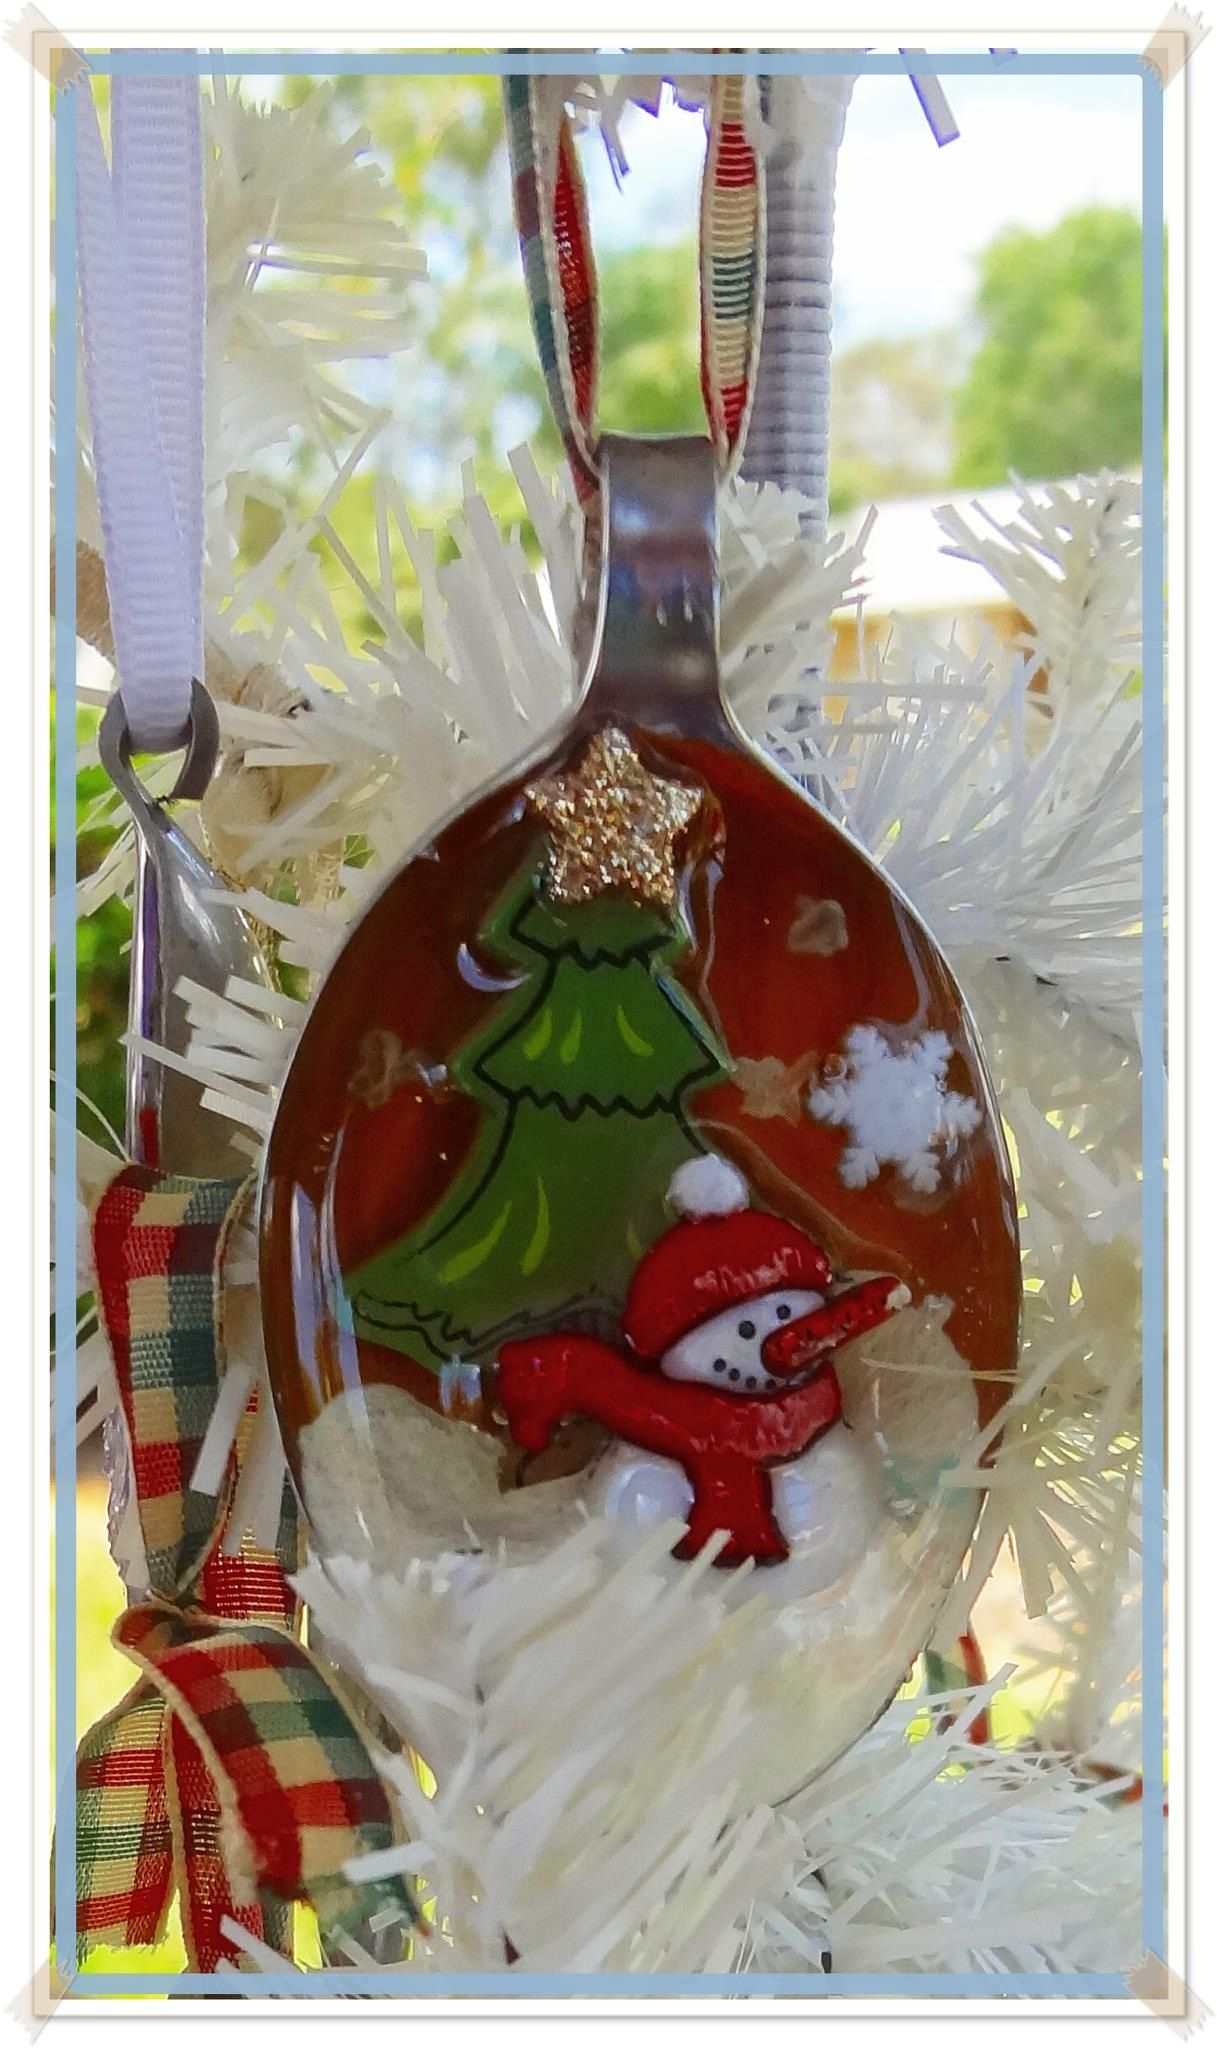 Christmas Ornament Silver Plated Spoon $15 00